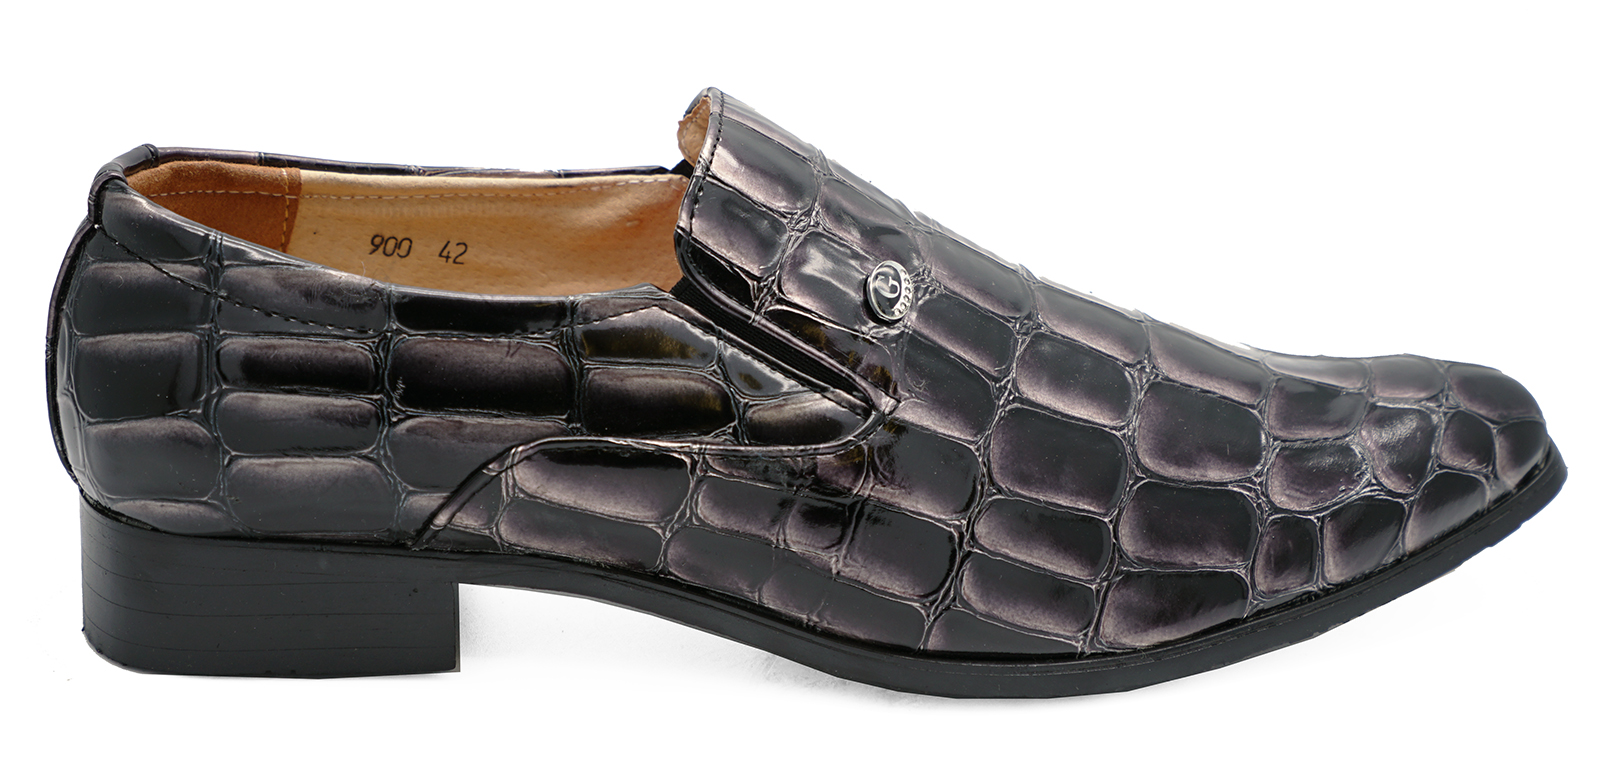 MENS-SLIP-ON-WORK-WEDDING-SMART-CASUAL-LOAFERS-FORMAL-SUIT-SHOES-SIZES-6-11 thumbnail 6